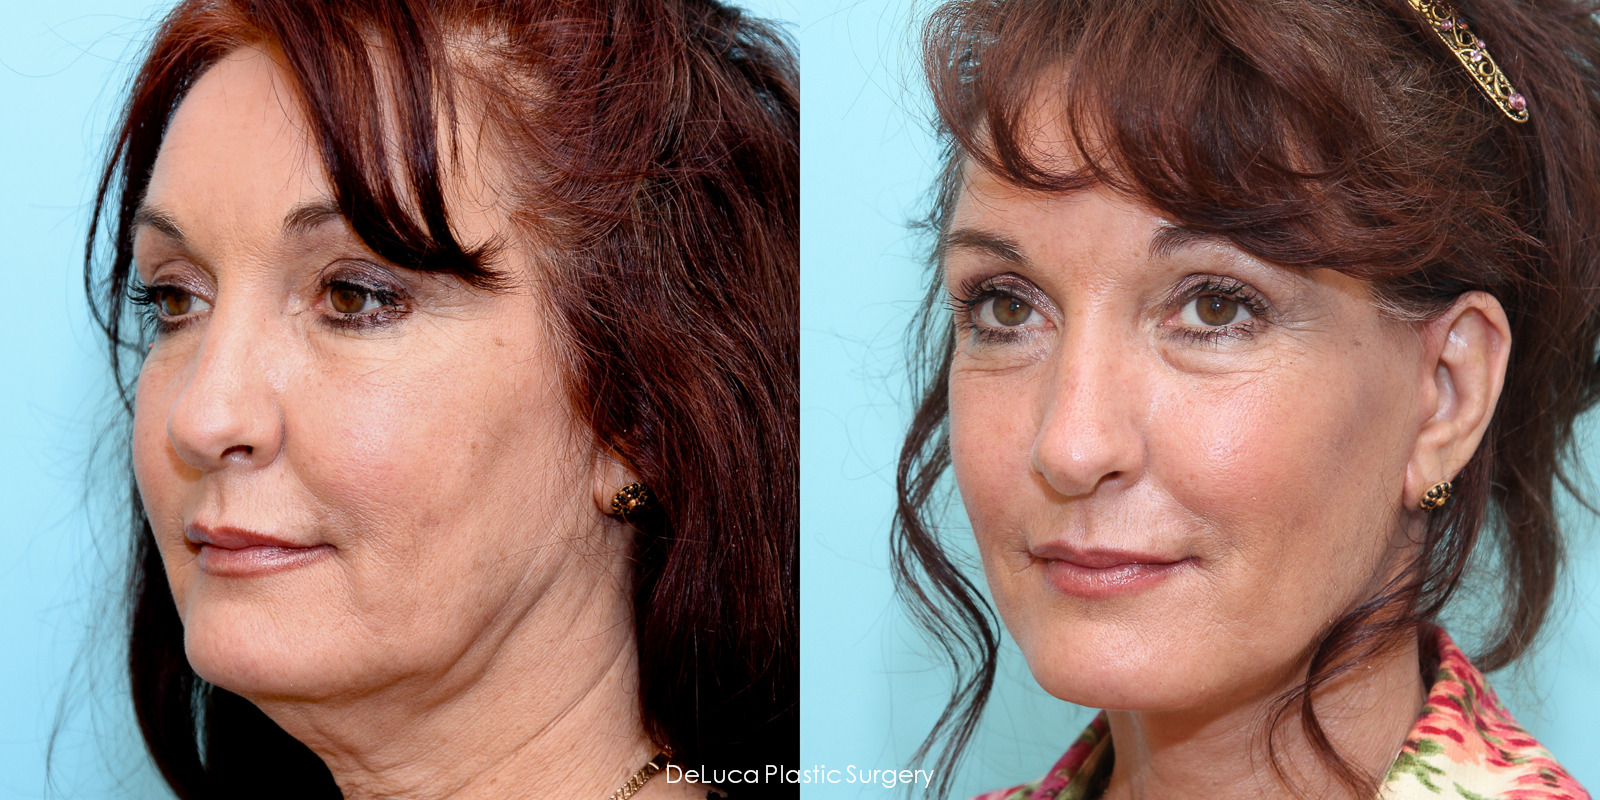 Facelift before and after photo- Deluca Plastic Surgery